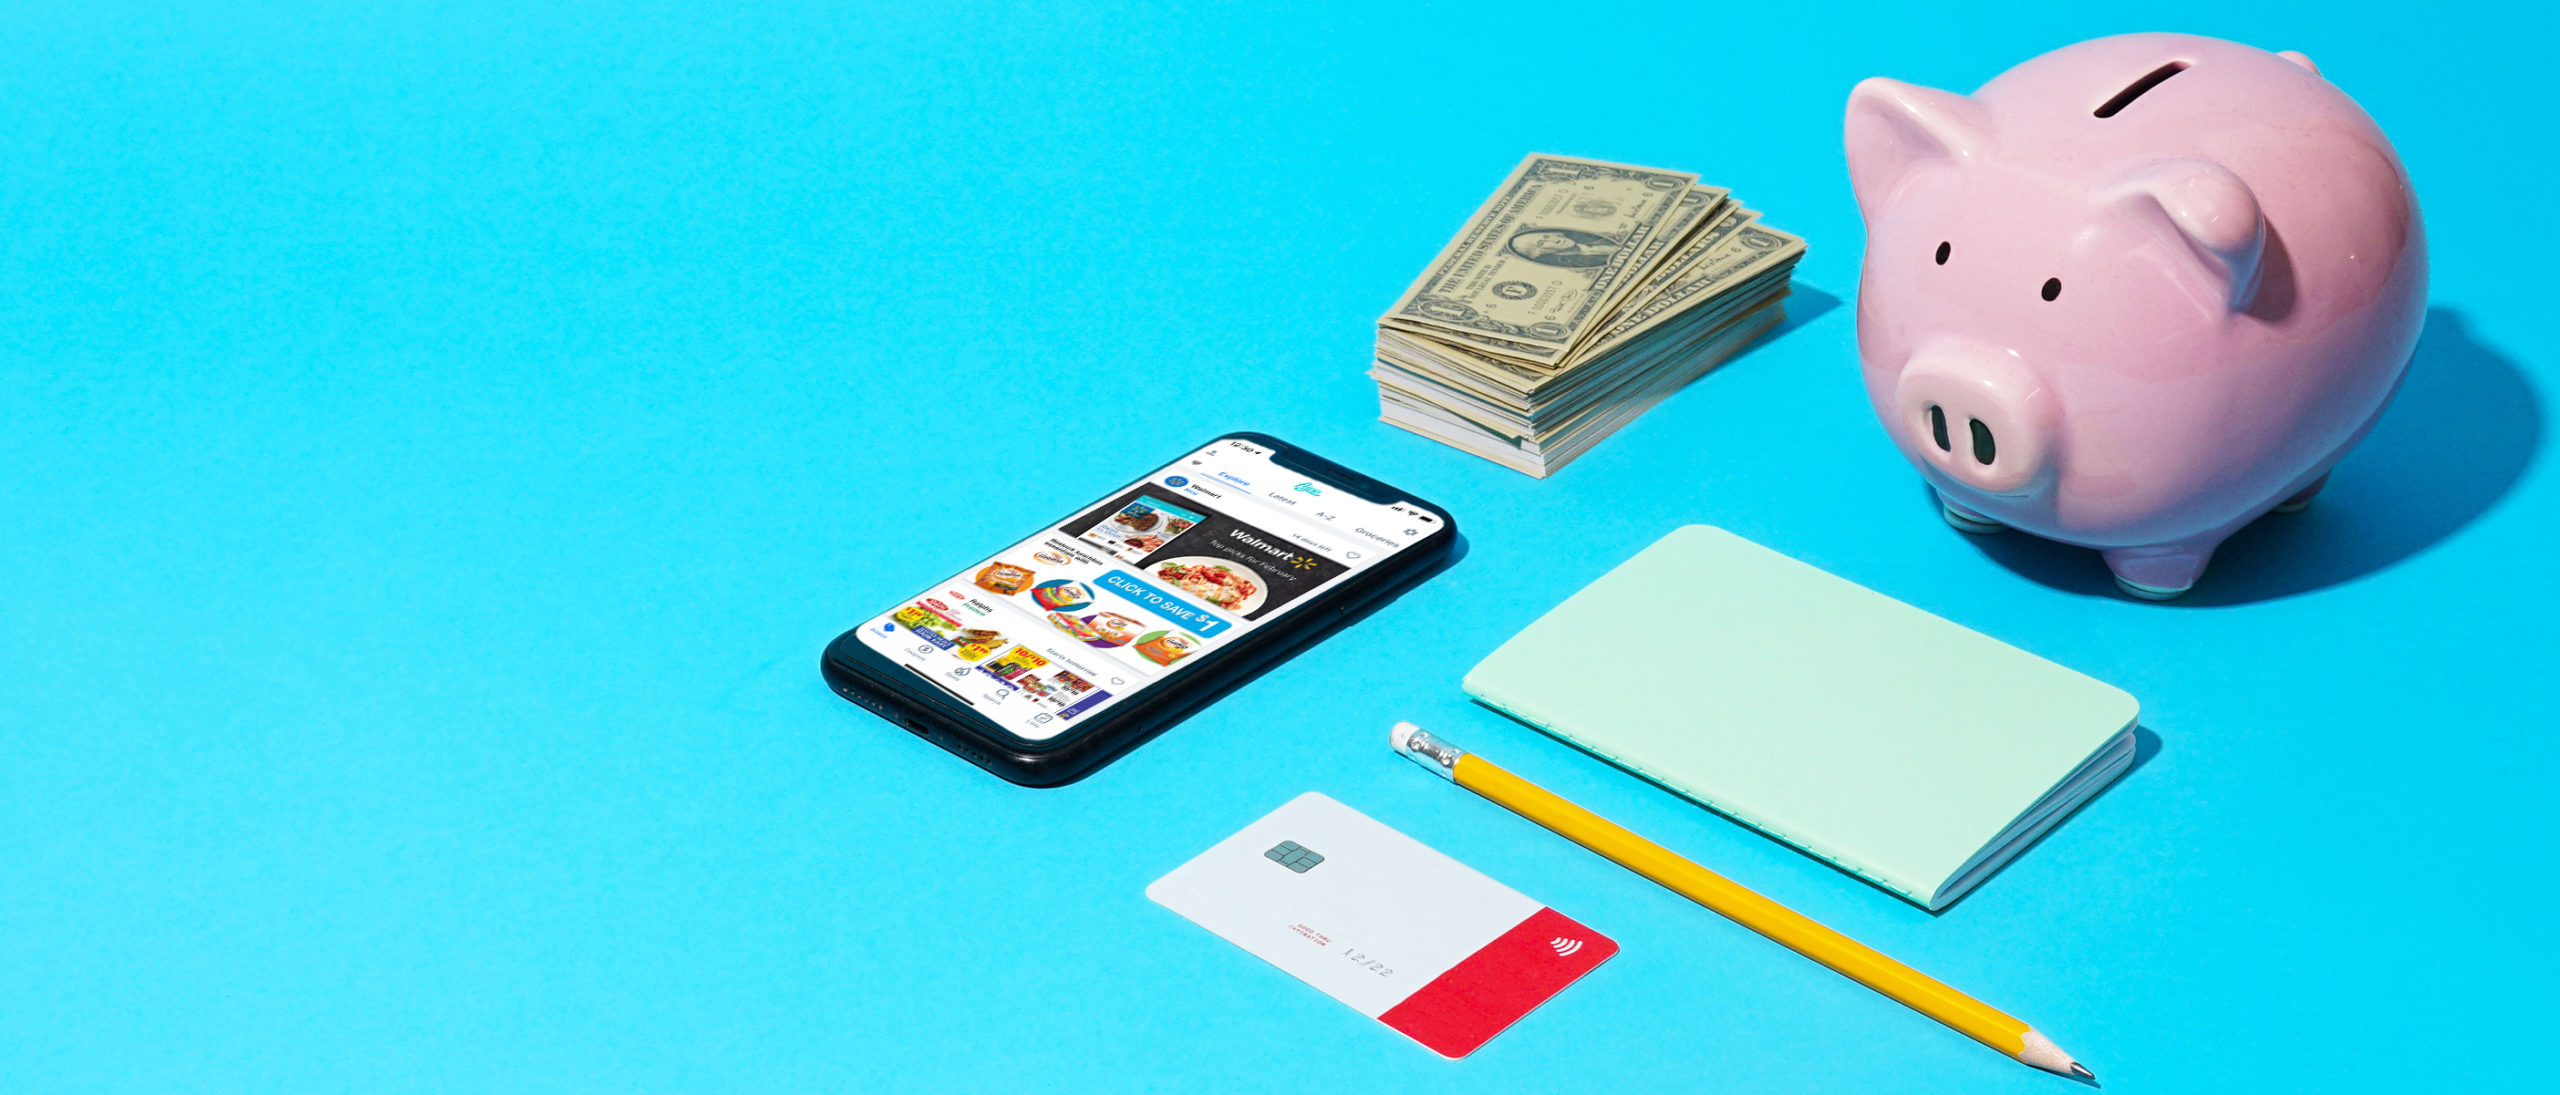 A phone, stack of cash, piggy bank, and notepad on a blue background